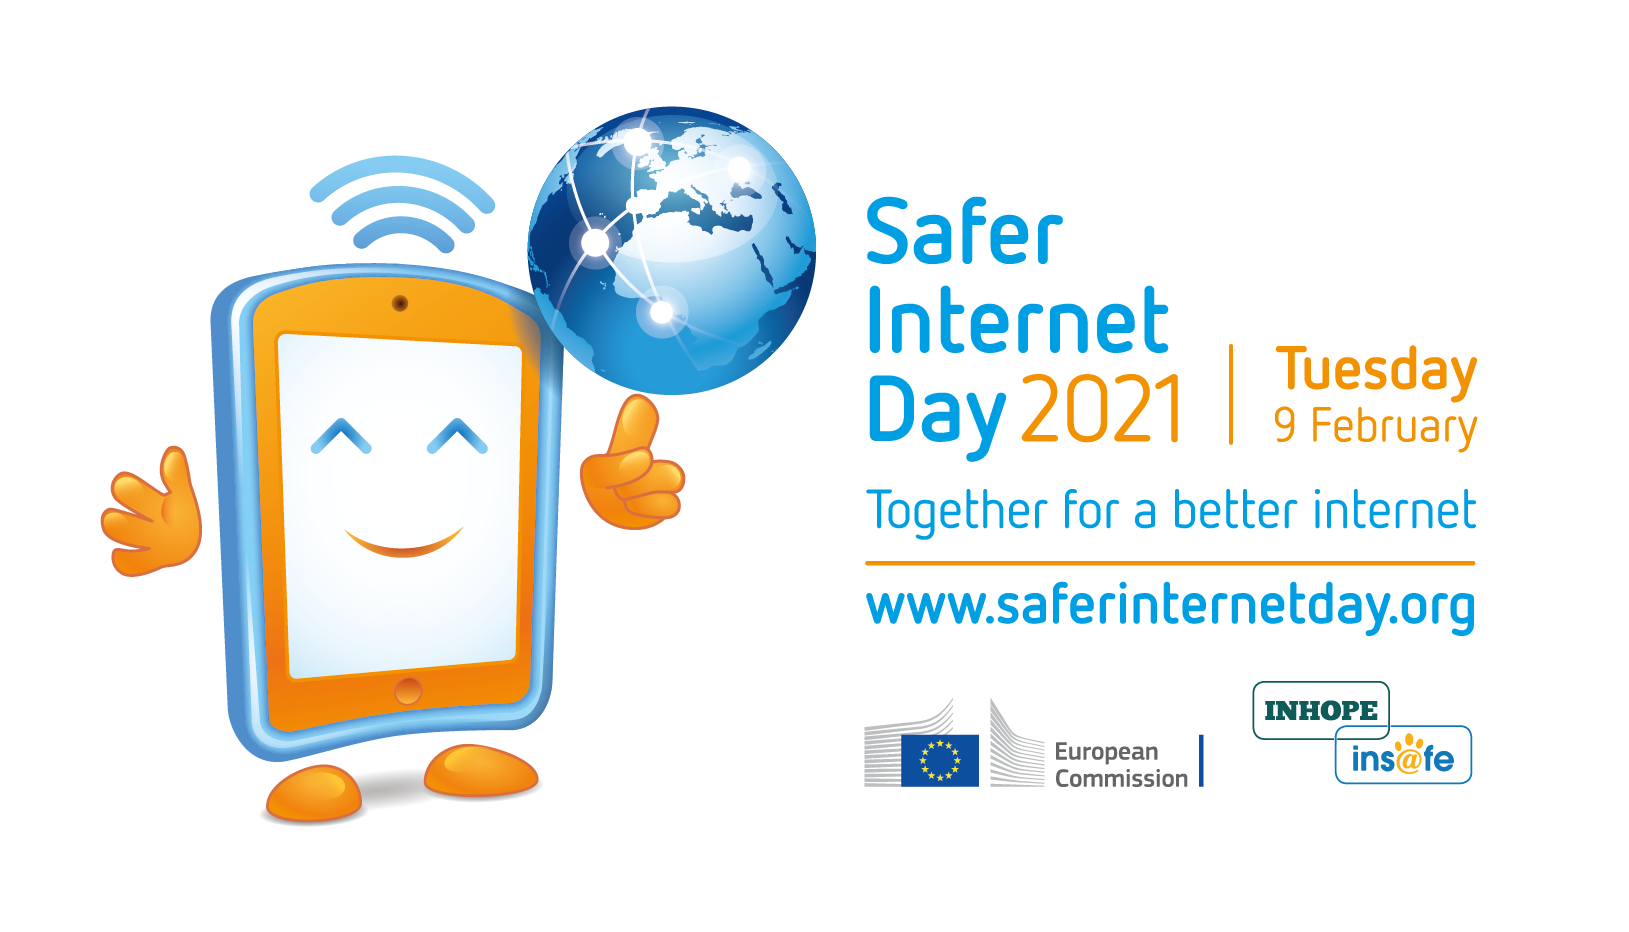 The Meet Group Announces Participation in 'Safer Internet Day'